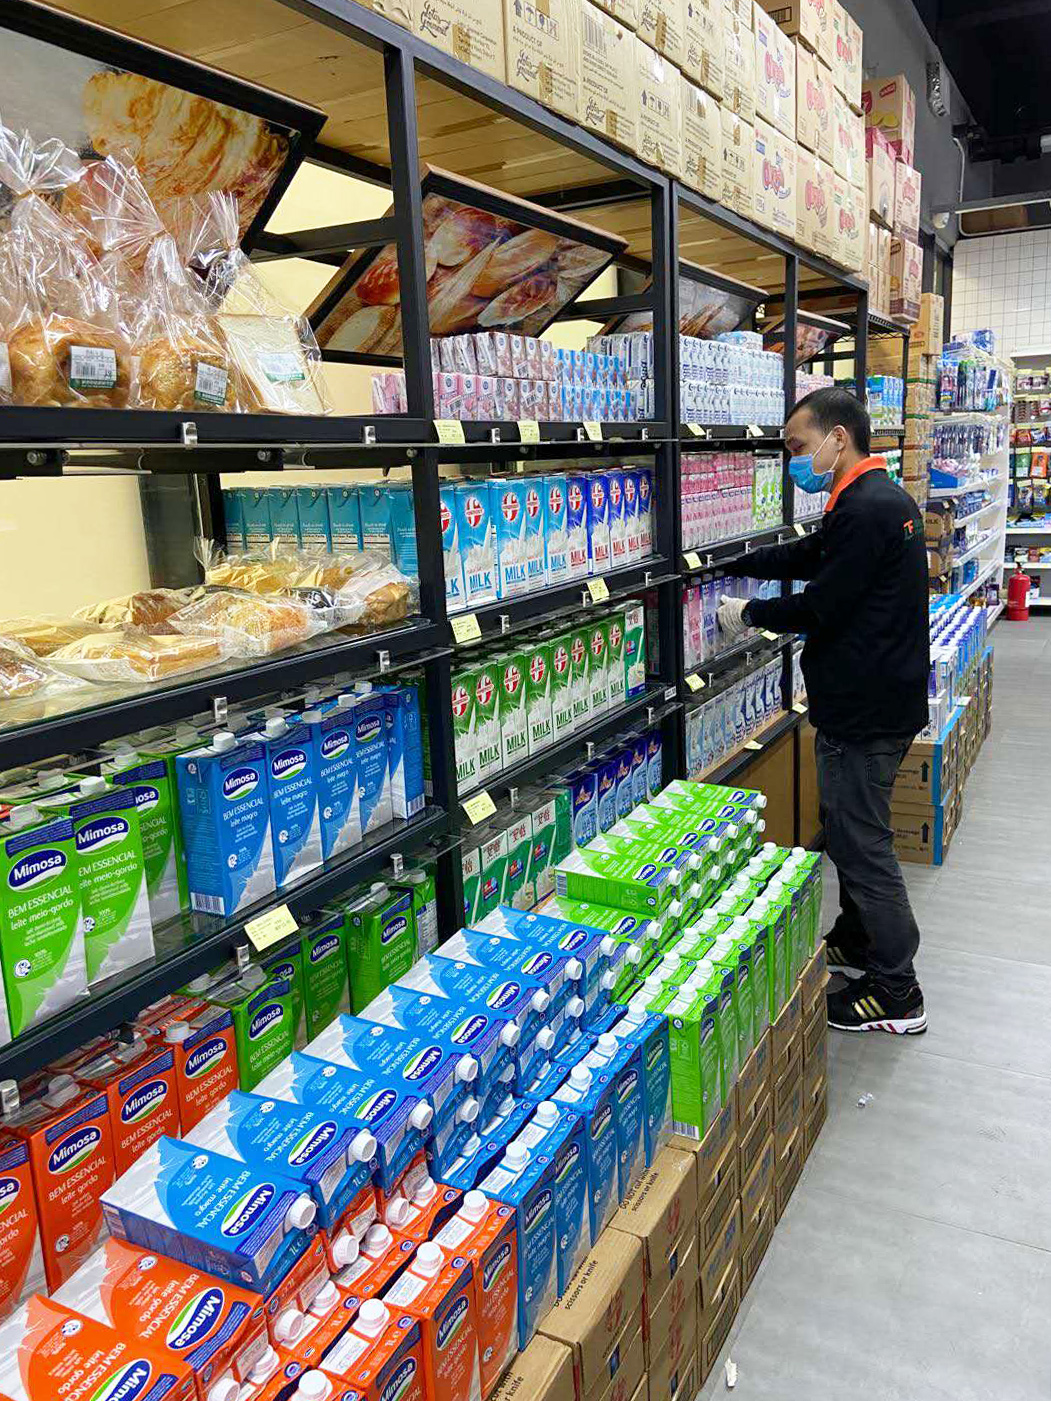 The campus supermarket ensures steady supply of daily necessities